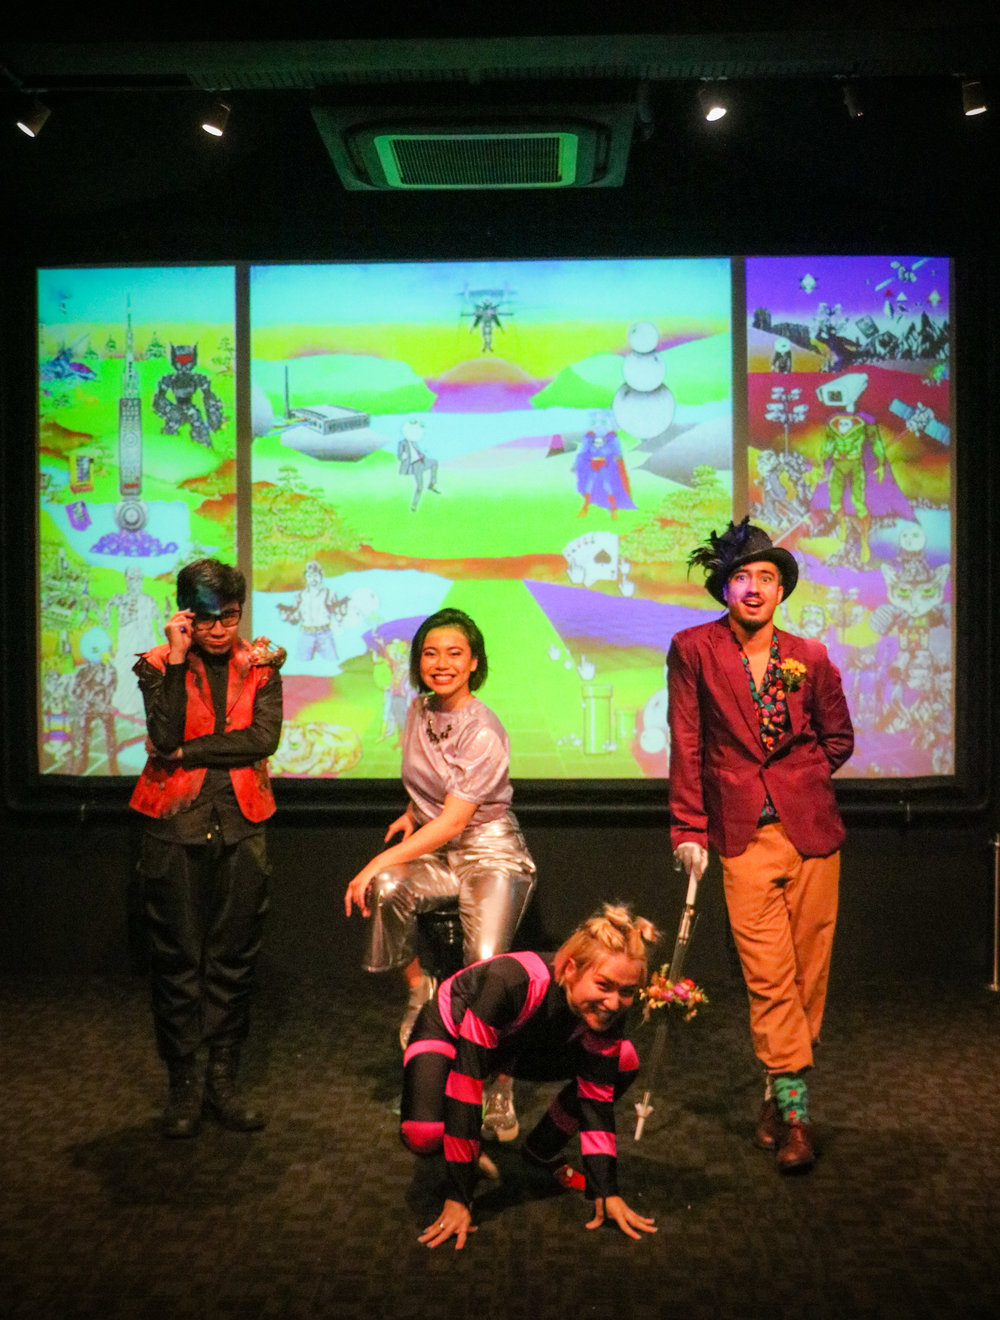 Installation view of The Garden of Internet Delights, with theatre group Patch and Punnet posing in front of Zxerokool's digital artwork.